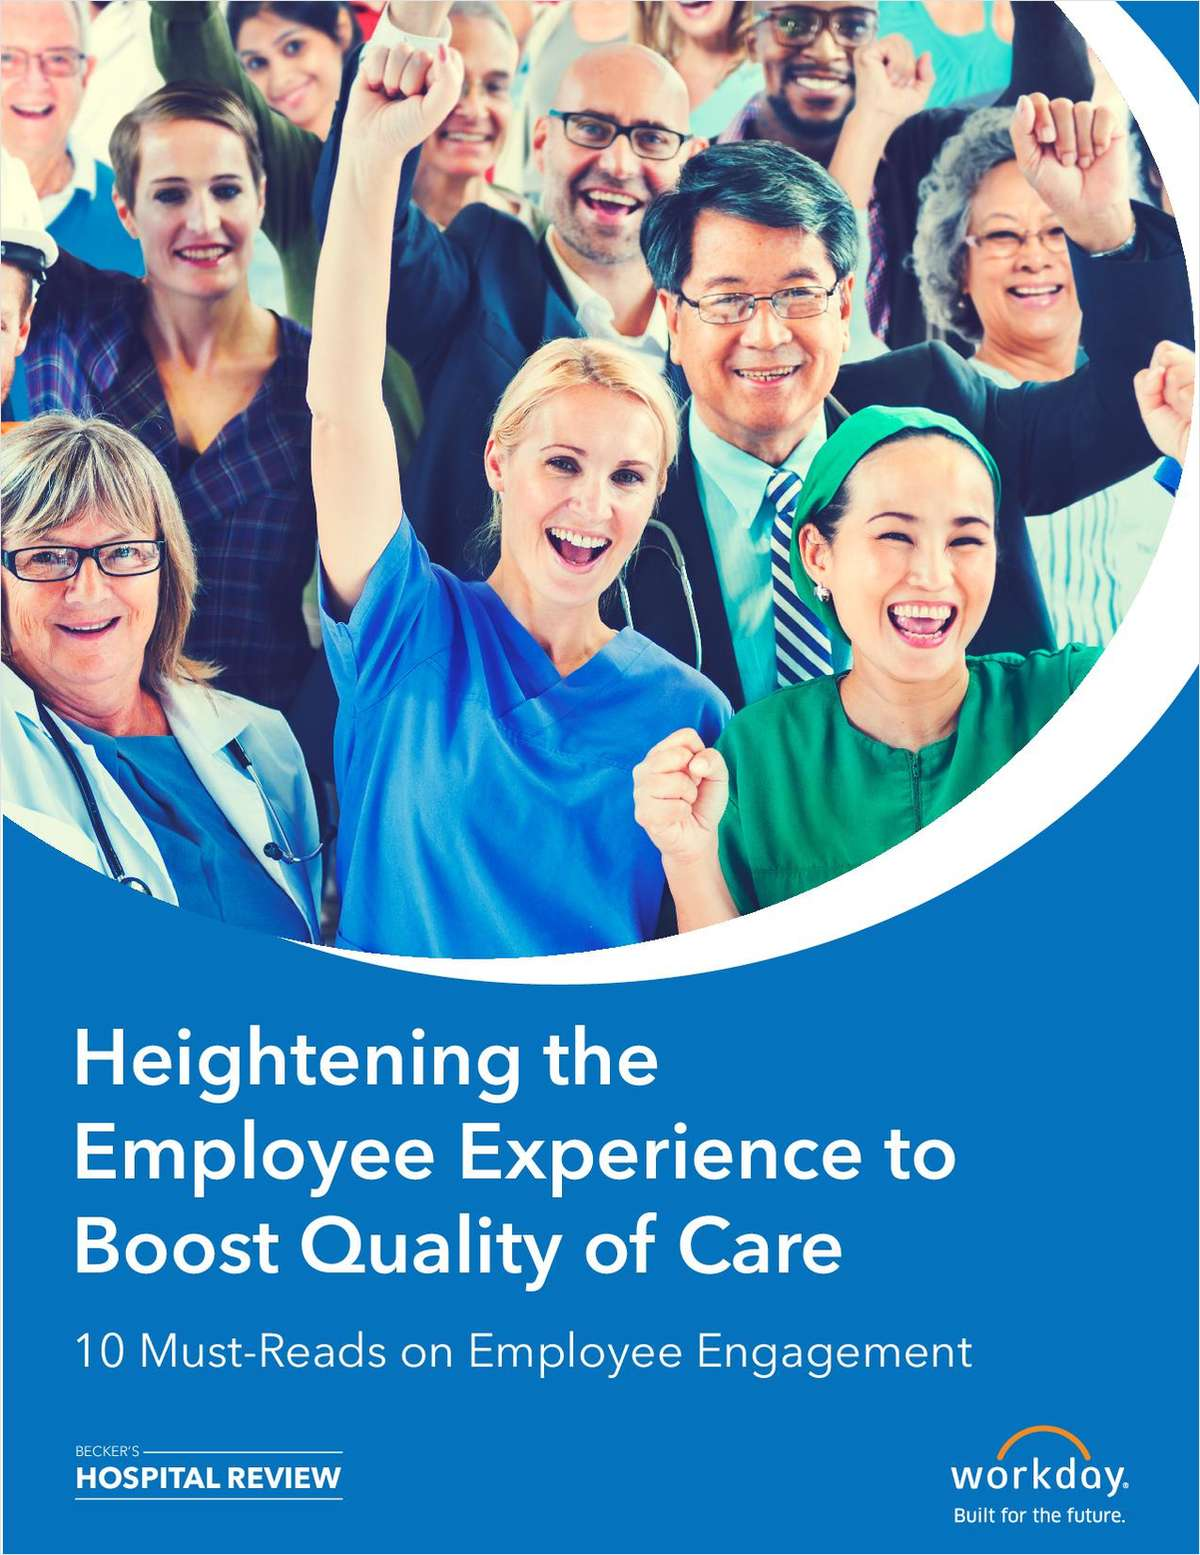 Heightening the Employee Experience to Boost Quality of Care